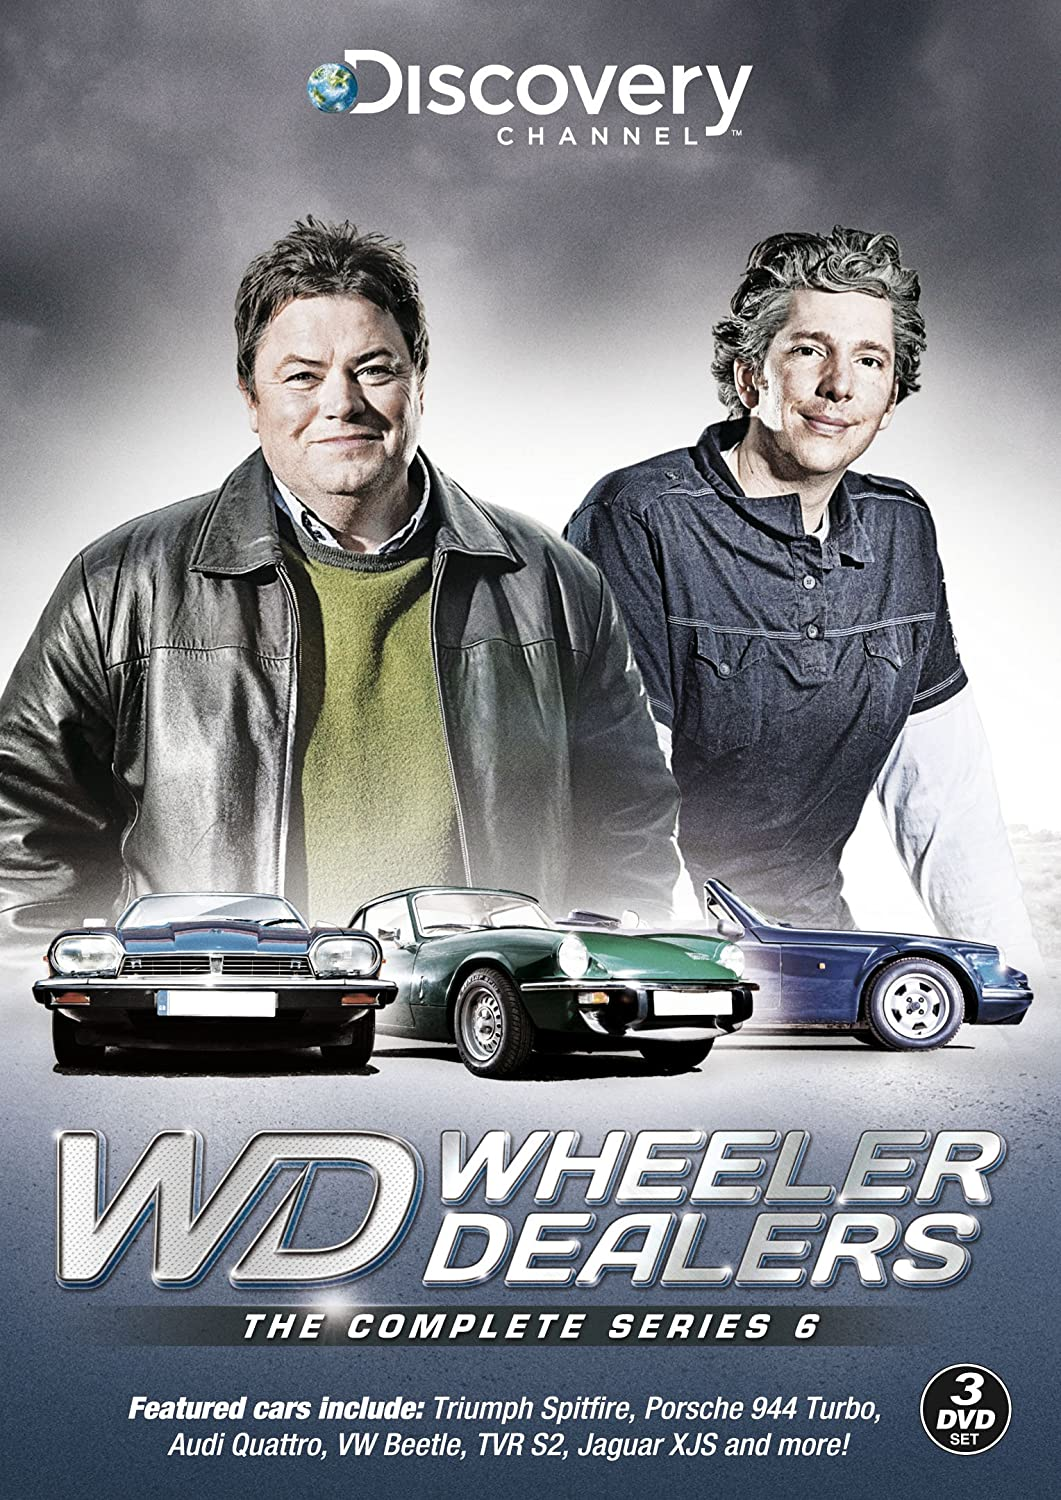 Wheeler Dealers: Series 6 [DVD] [Reino Unido]: Amazon.es: Cine y Series TV